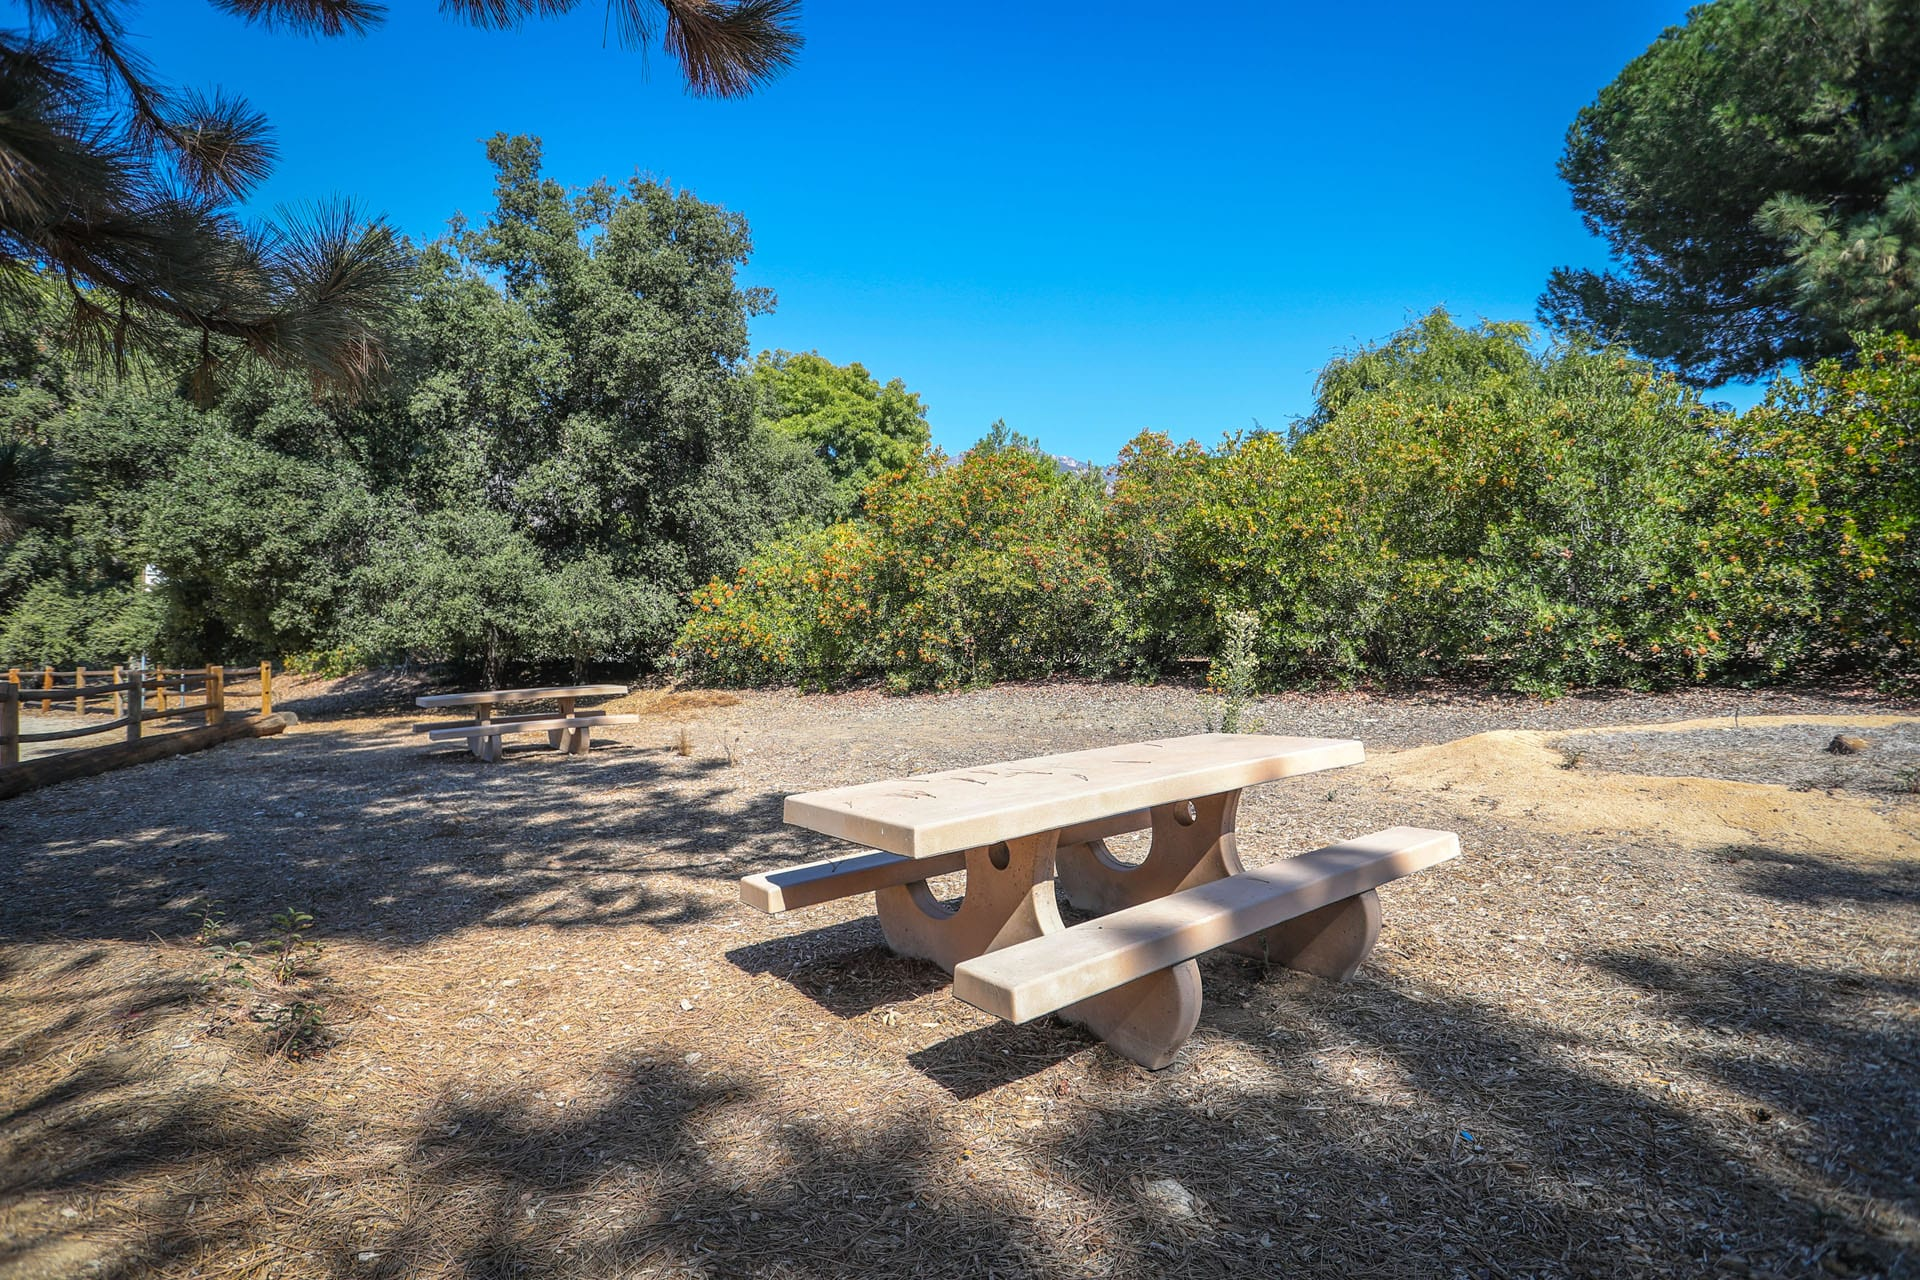 Picnic tables shaded by trees